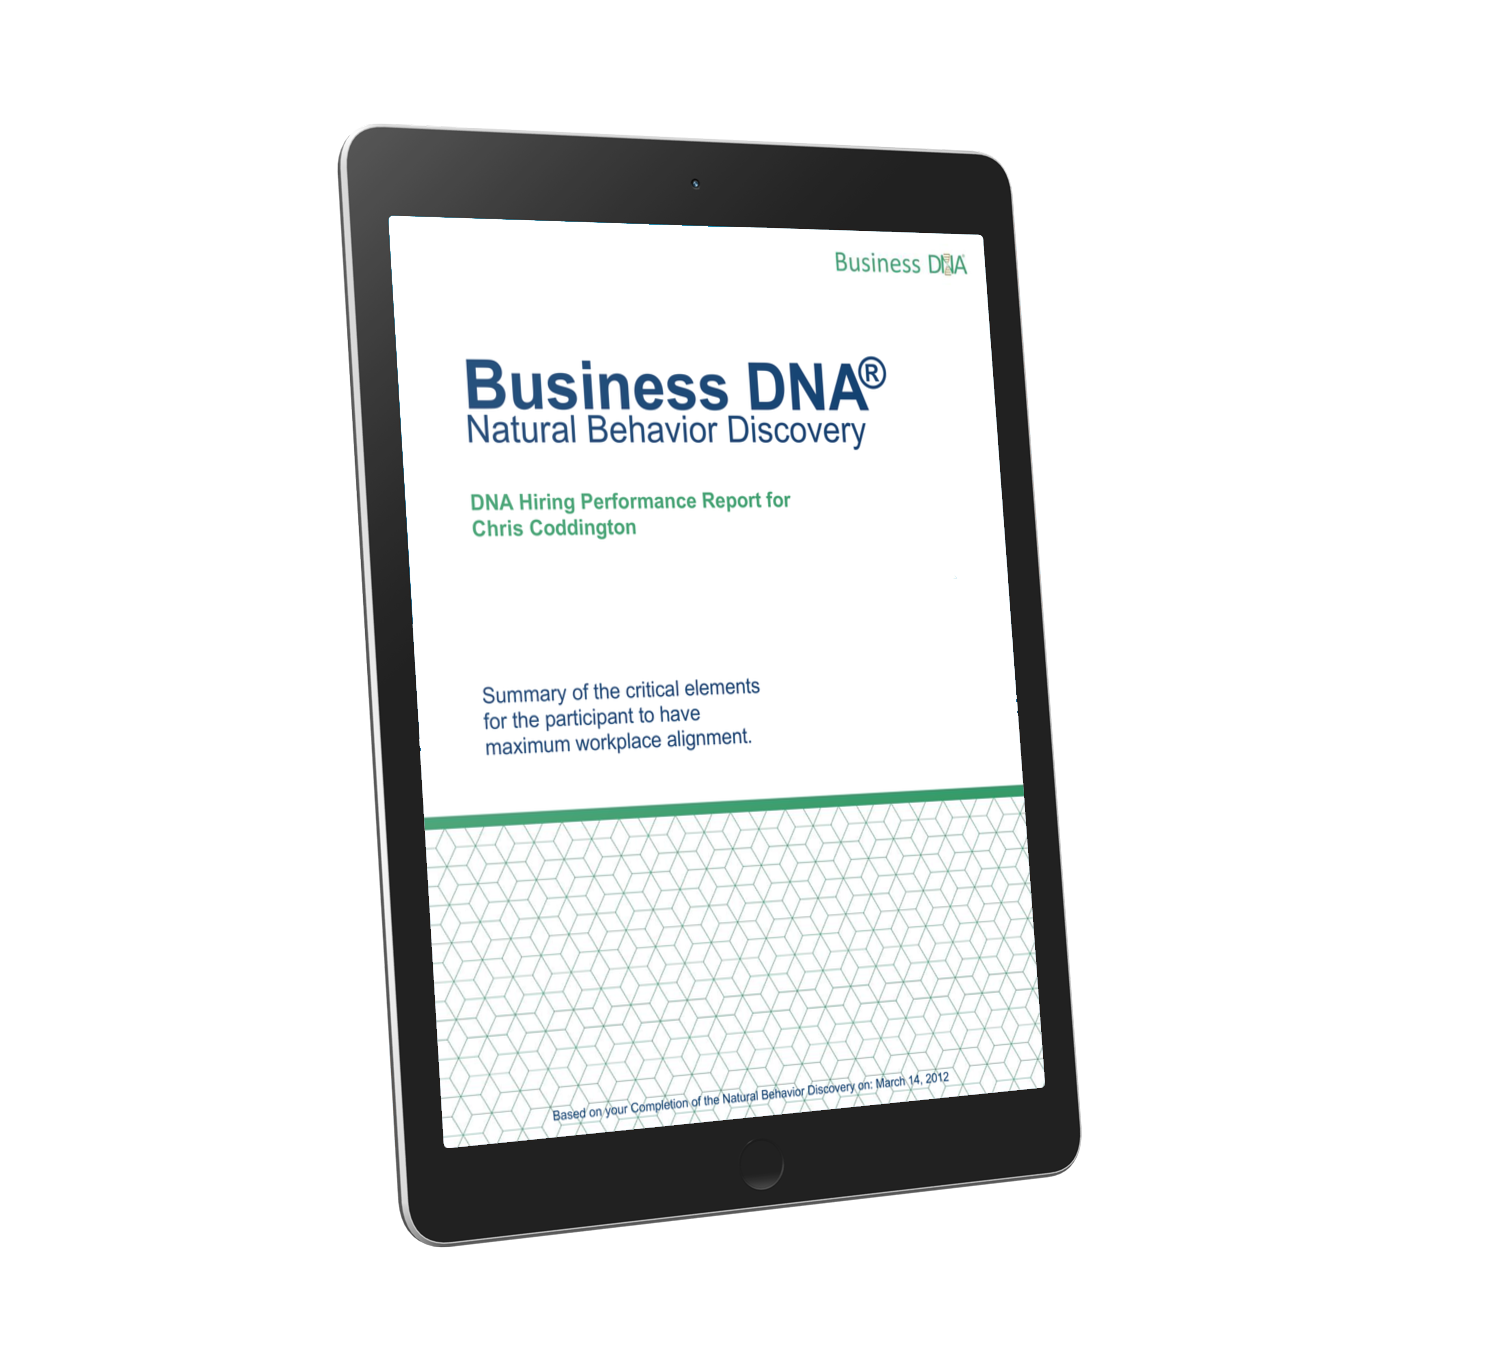 Business DNA Hiring Report for Chris Coddington